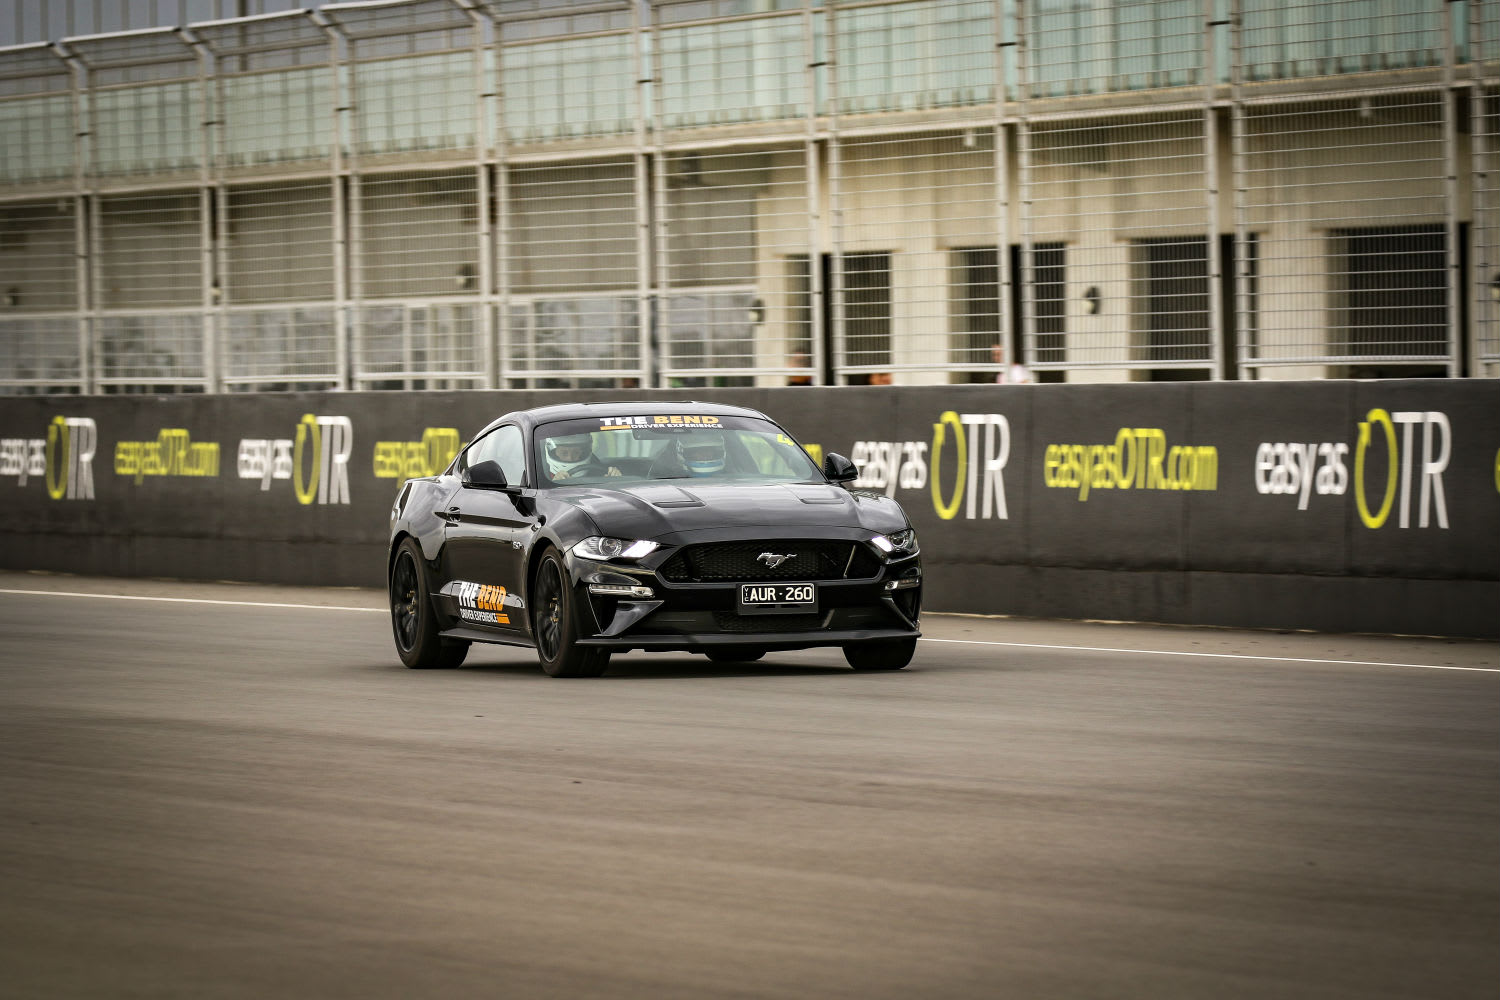 V8 Mustang Hot Laps, 3 Laps - The Bend Motorsport Park, Adelaide